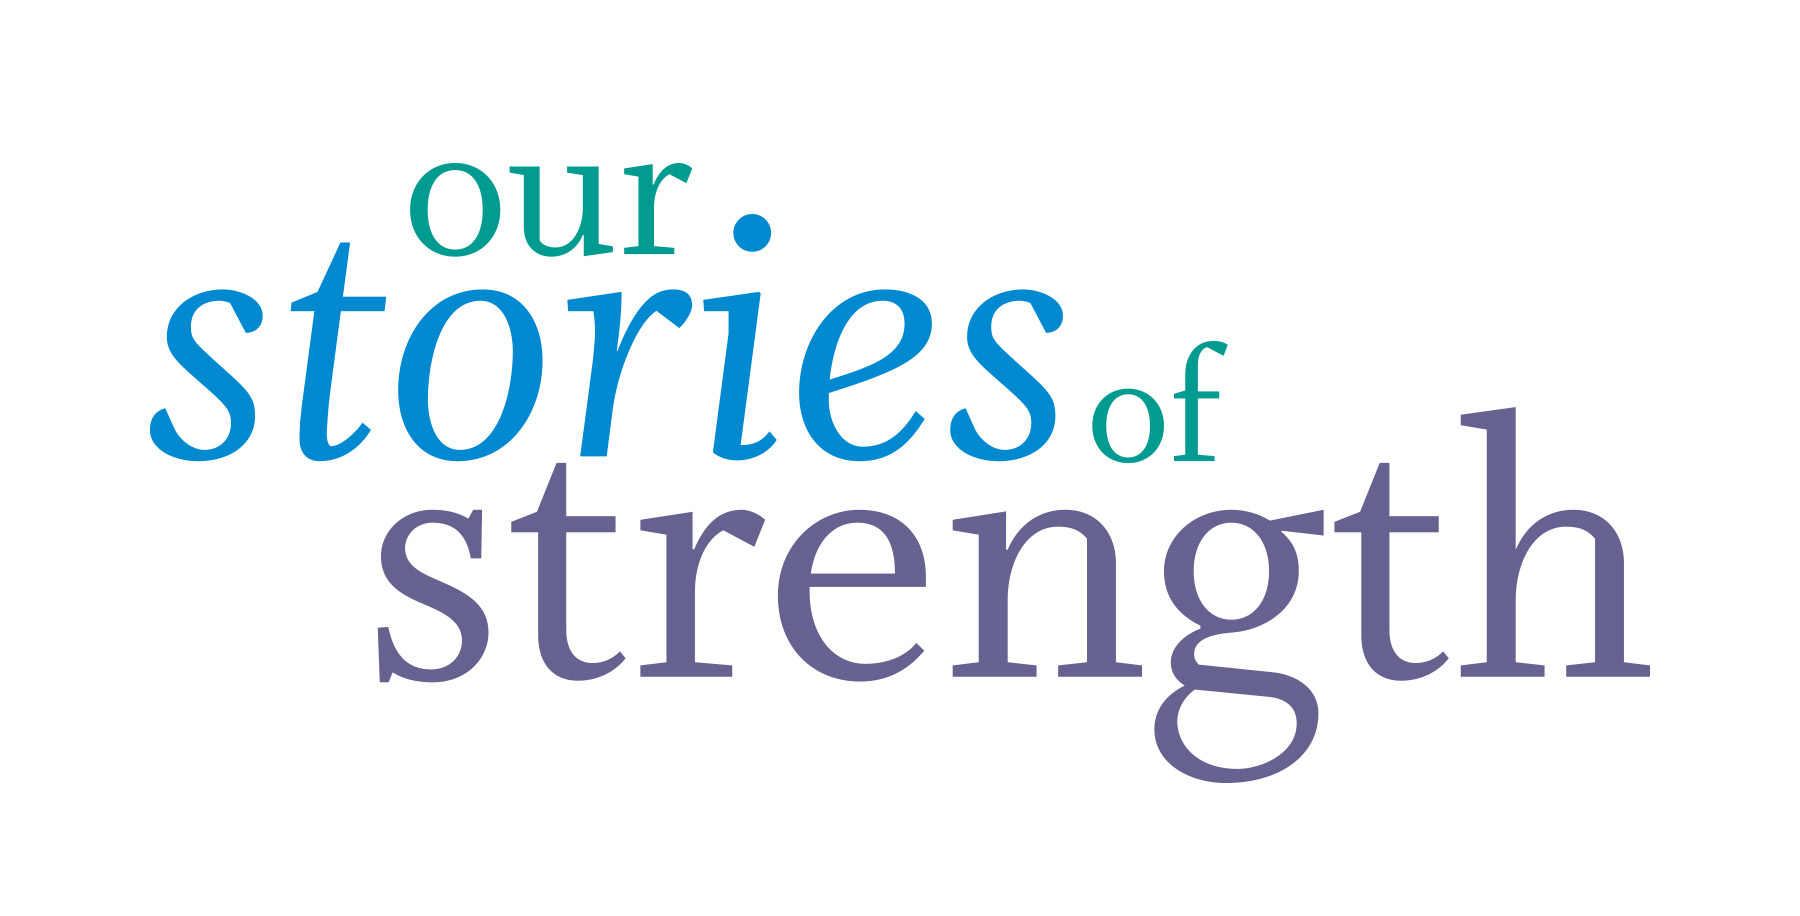 Join the Our Stories of Strength movement!